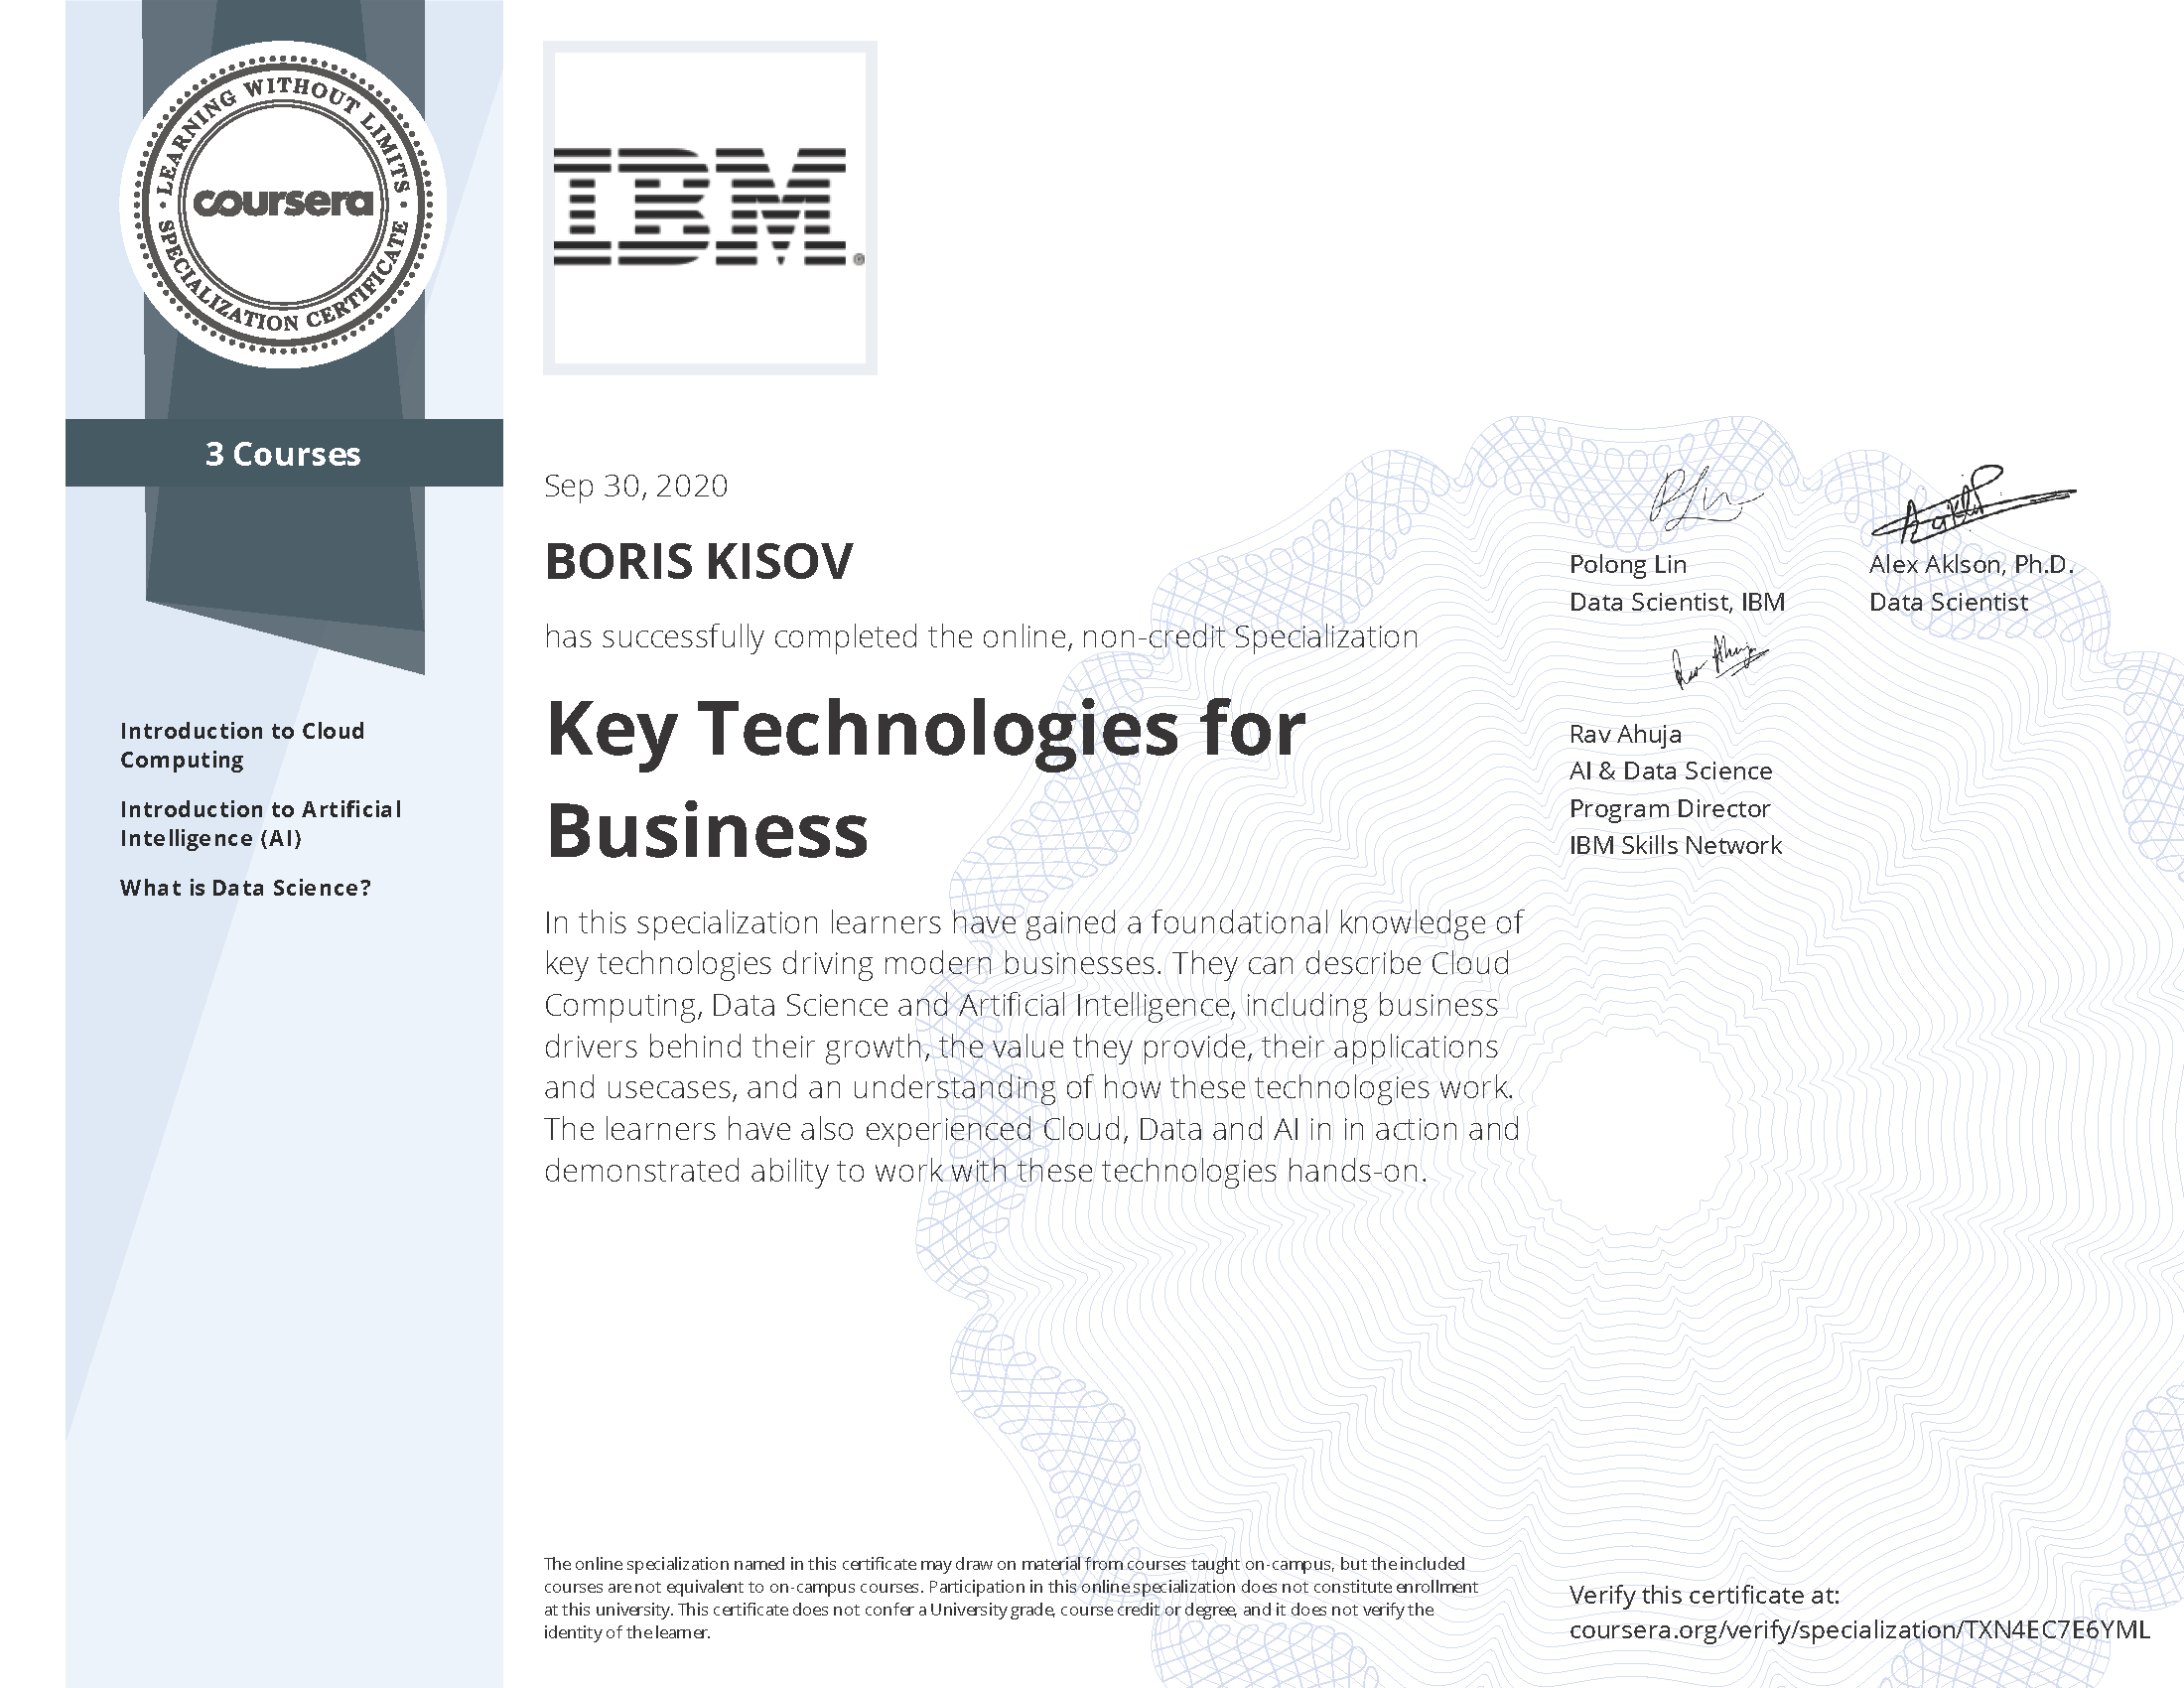 Key Technologies for Business